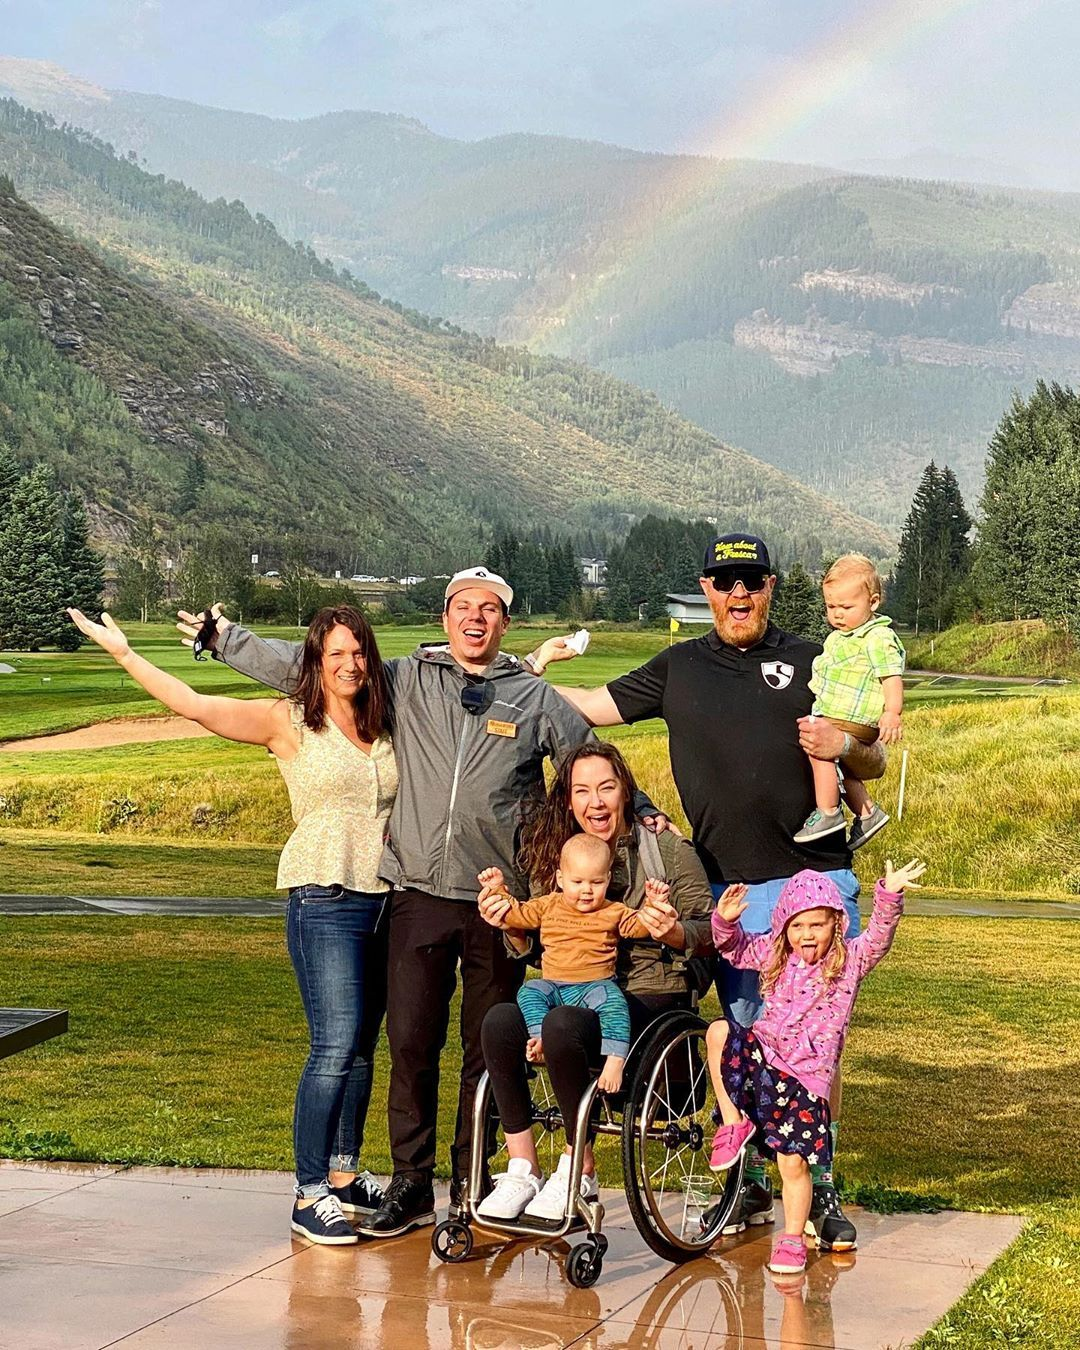 Happy Birthday @roytuscany … Happy 6th annual @hi5sfoundation Colorado Golf Tournament … Happy to get our twins Bo and Gunnar together at last! (at Vail Golf Club)https://www.instagram.com/p/CEaQvcgFPpl/?igshid=1muj89fp4wpru